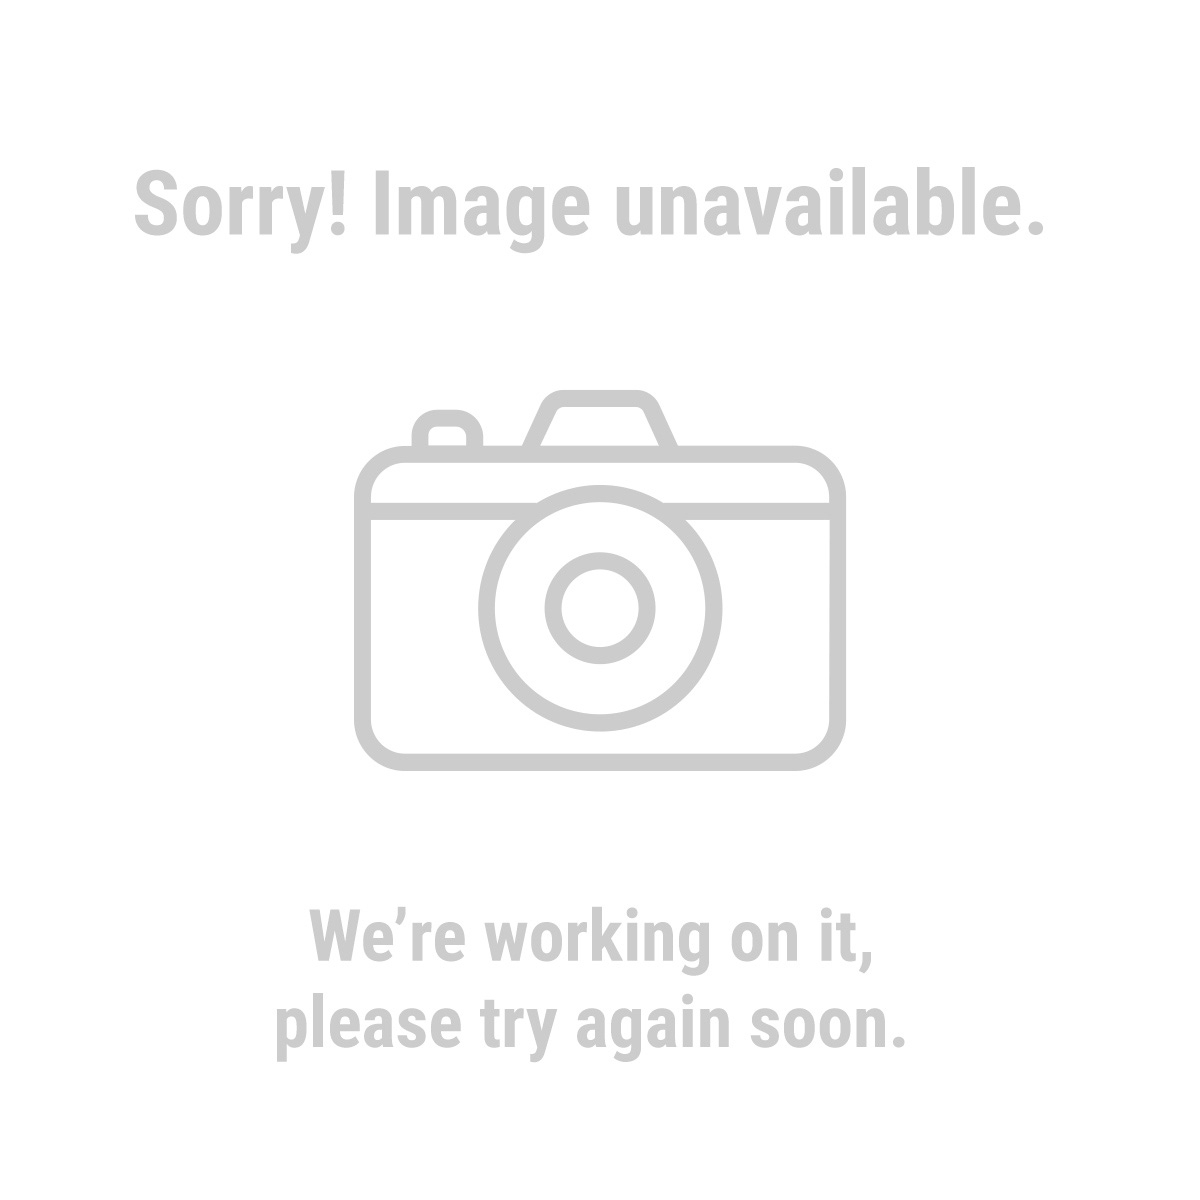 Chicago Electric Power Tools 3292 Pack of 5 Palm Sander Replacement Pads